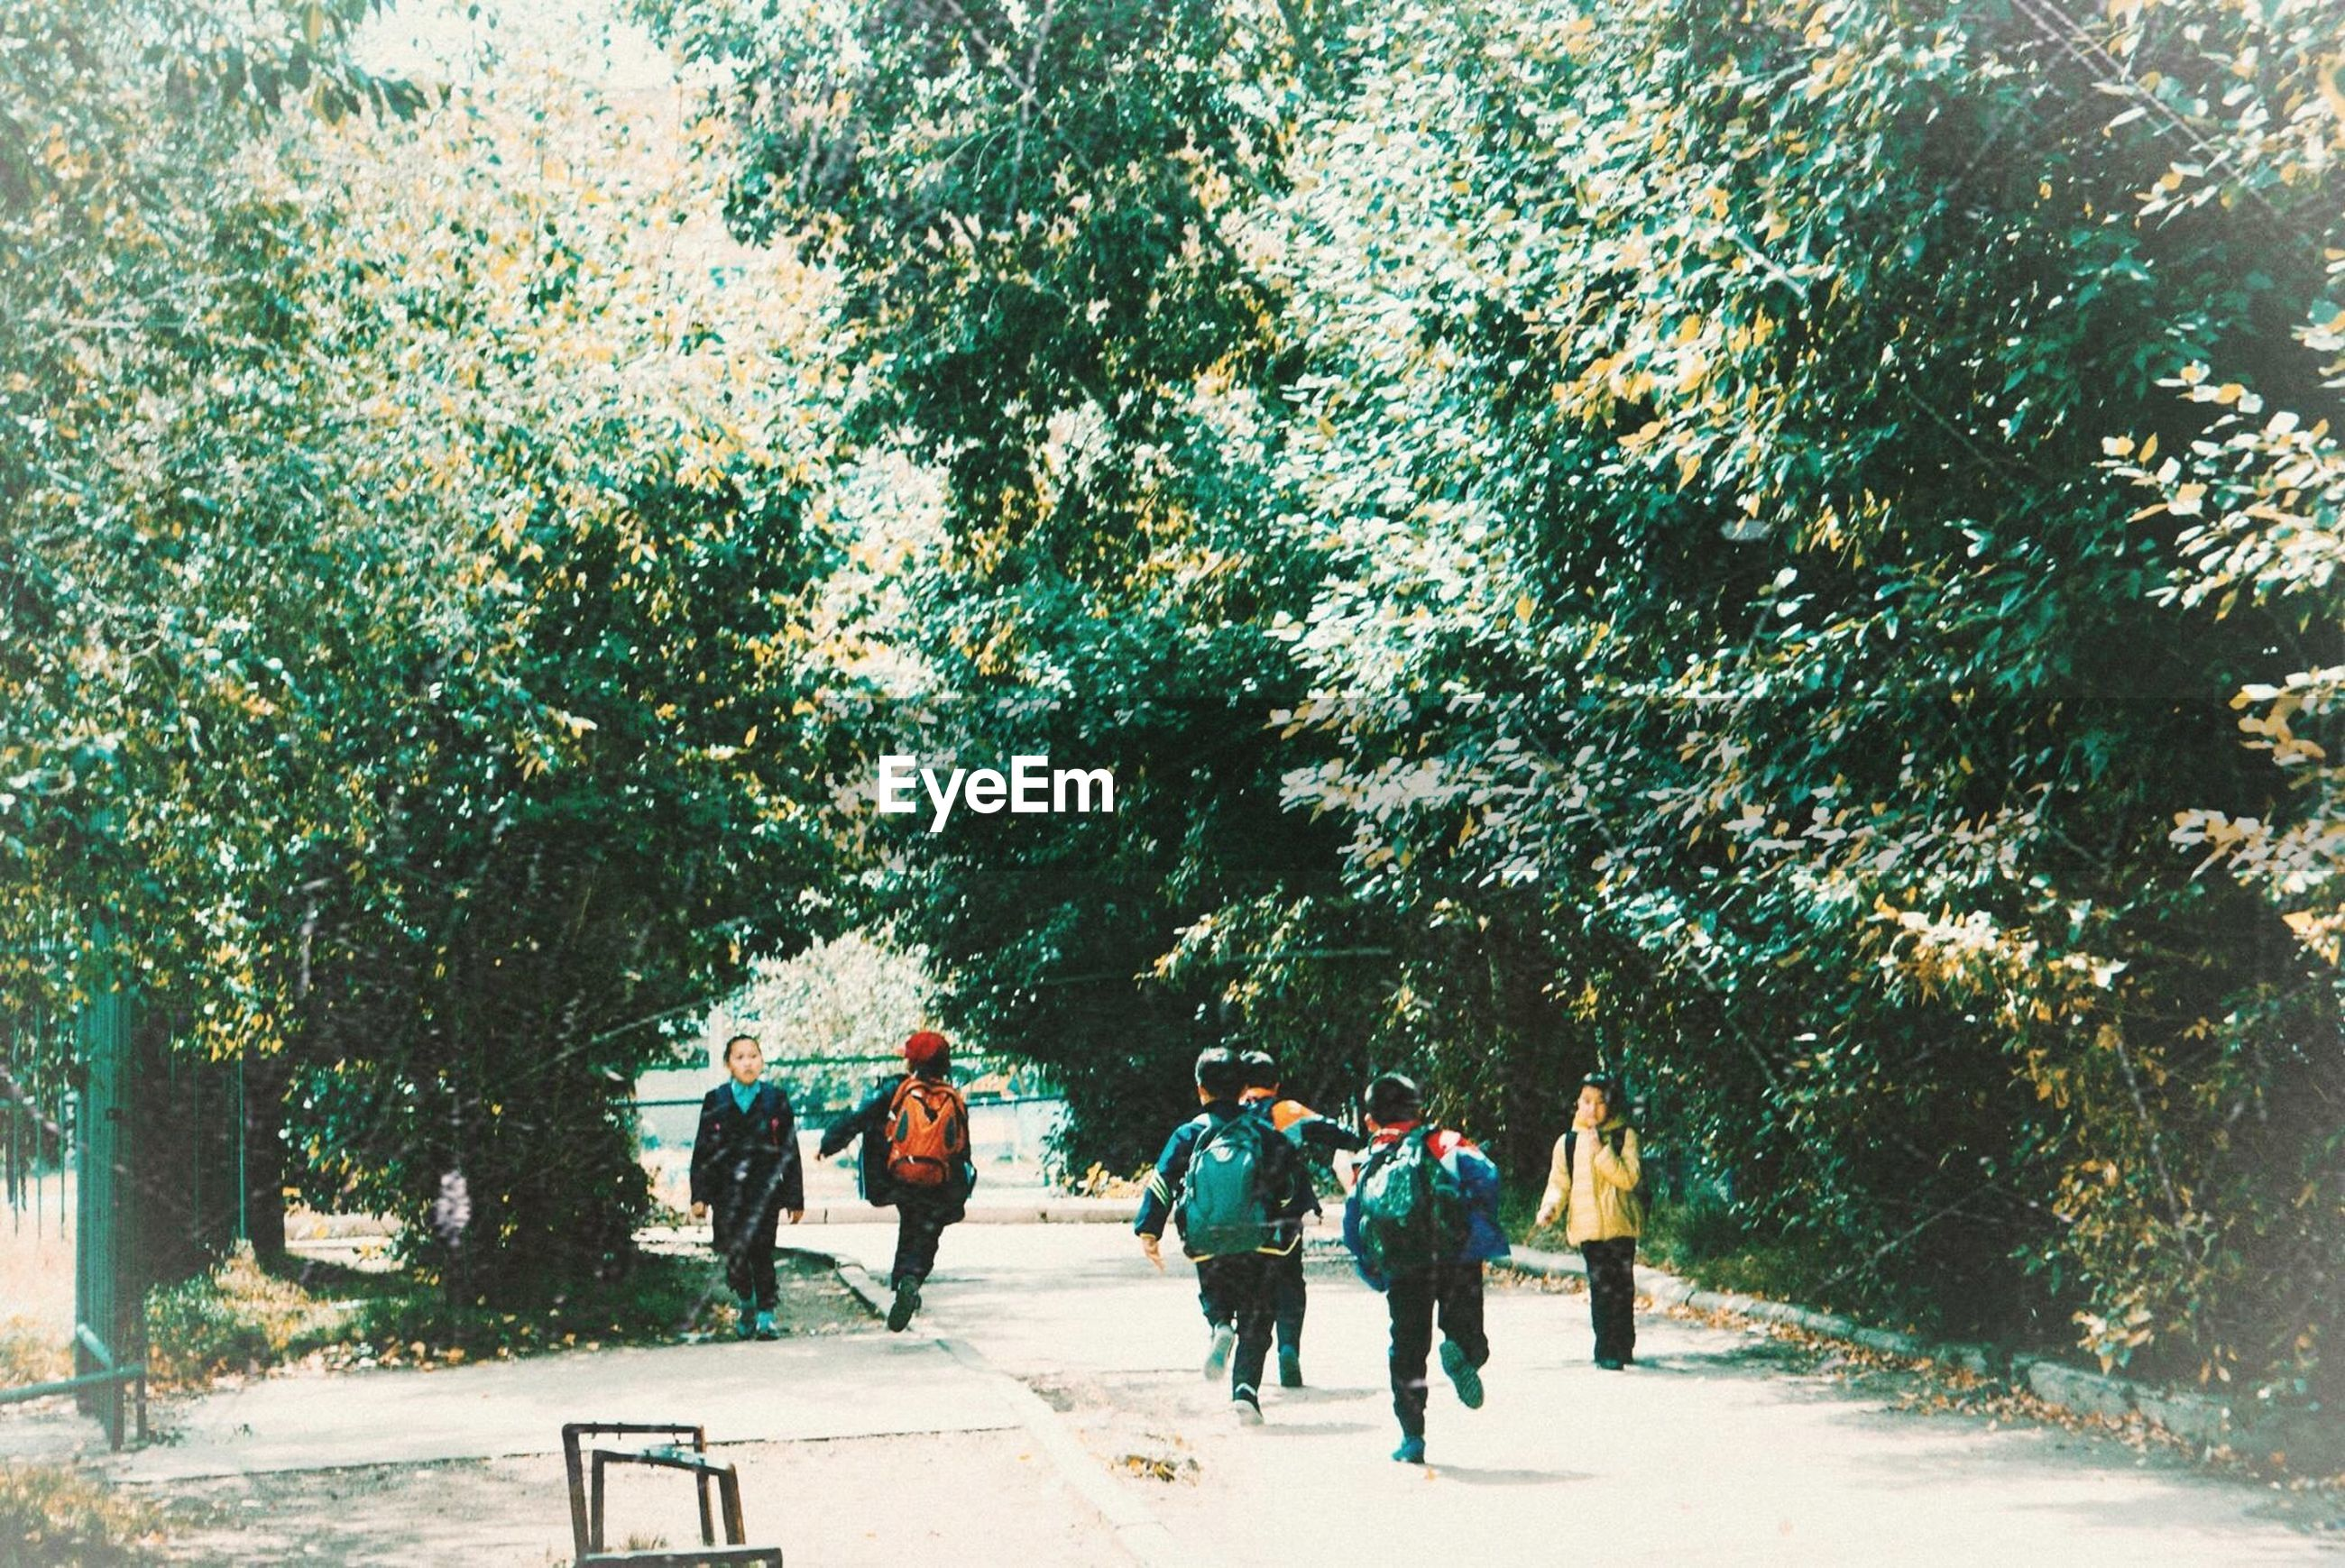 tree, walking, full length, rear view, road, group of people, person, men, park - man made space, togetherness, footpath, day, friendship, nature, pathway, tranquility, tranquil scene, treelined, green color, outdoors, solitude, beauty in nature, non-urban scene, the way forward